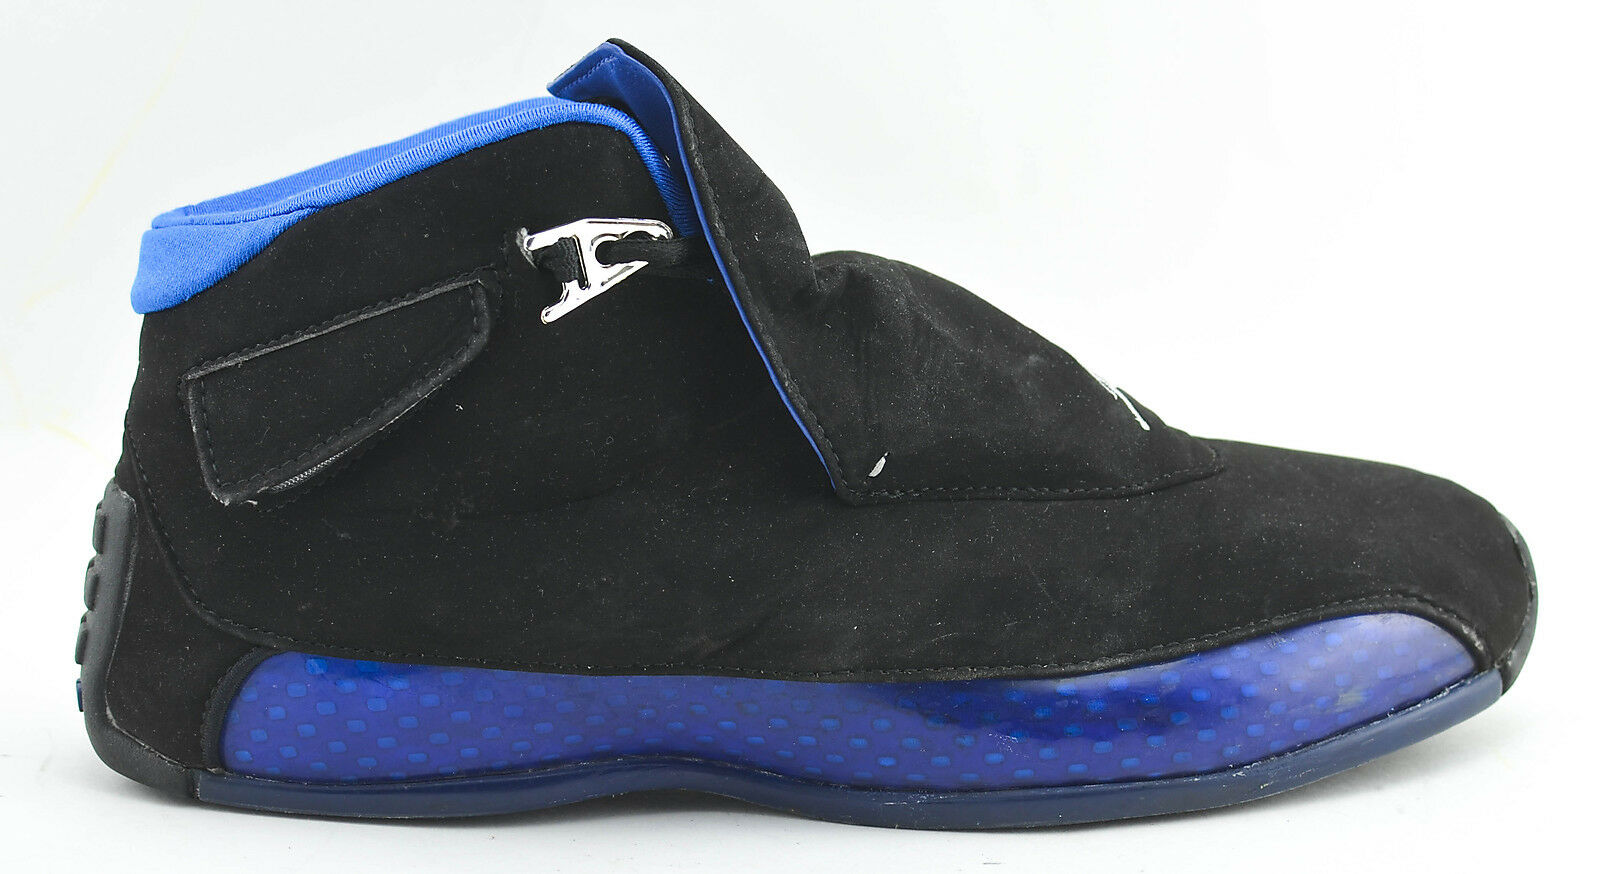 MENS NIKE AIR JORDAN XVII 18 2003 BASKETBALL SHOES SIZE 11 BLACK blueE 307985 111